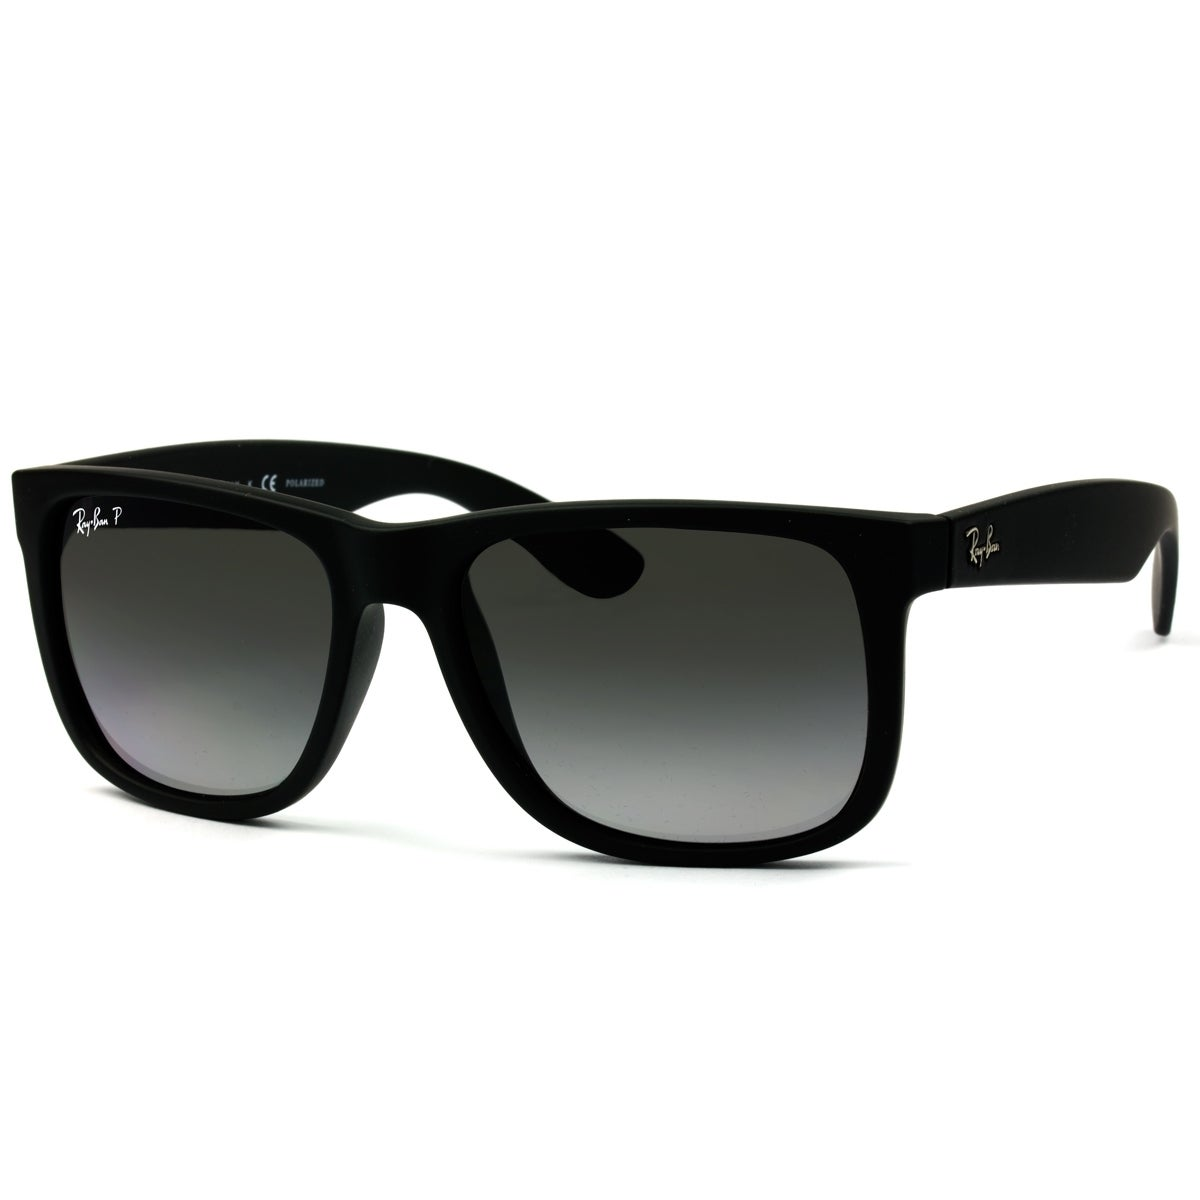 e521e81419 Ray-Ban RB4165 622 T3 Justin Classic Black Frame Polarized Grey Gradient  55mm Lens Sunglasses